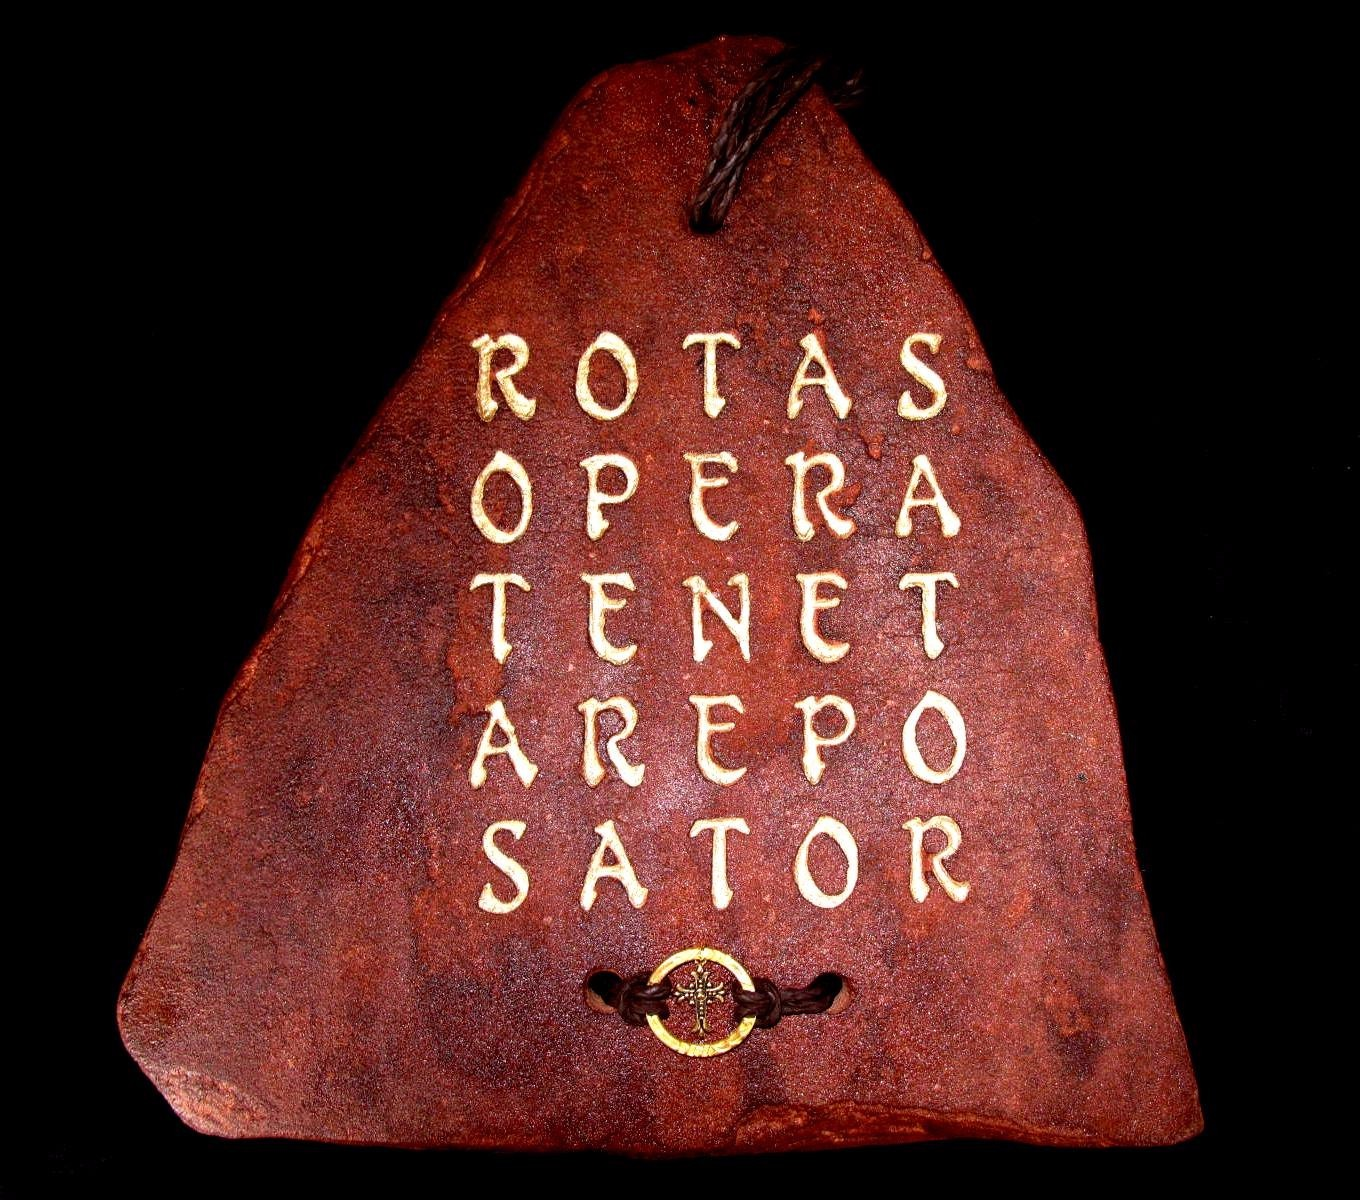 Ancient Terragon Satorsquare tablet.